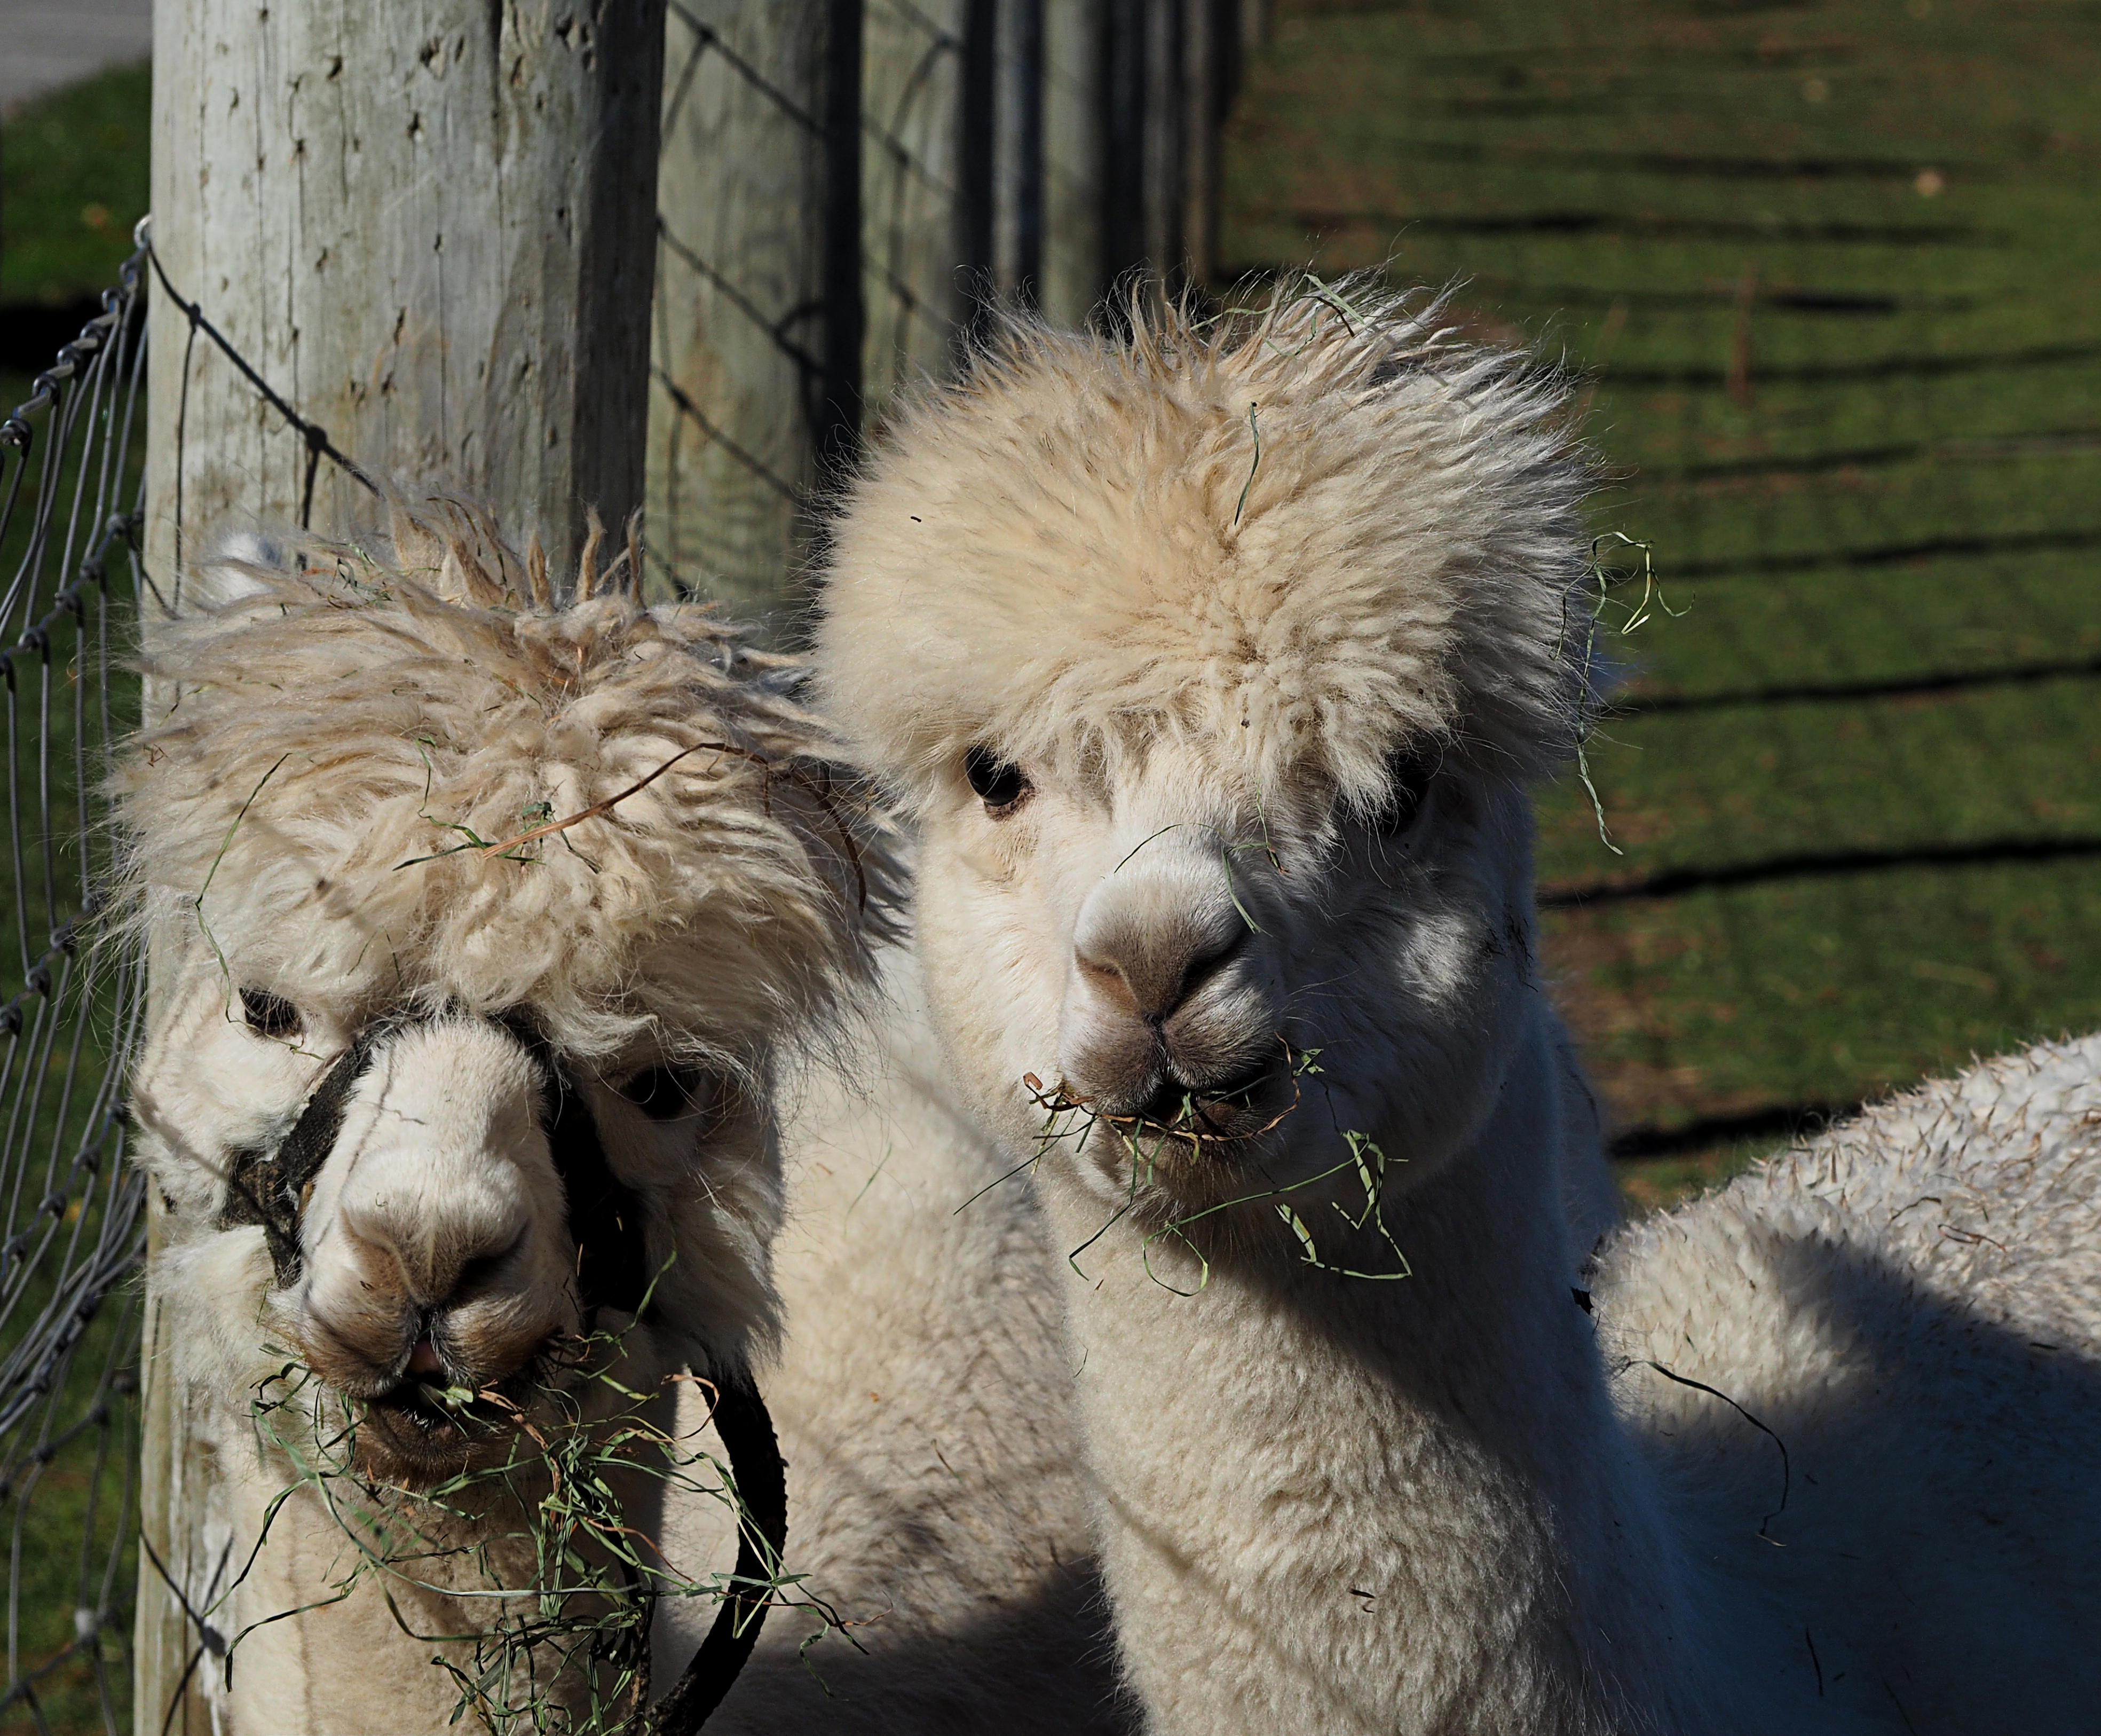 Winery alpacas